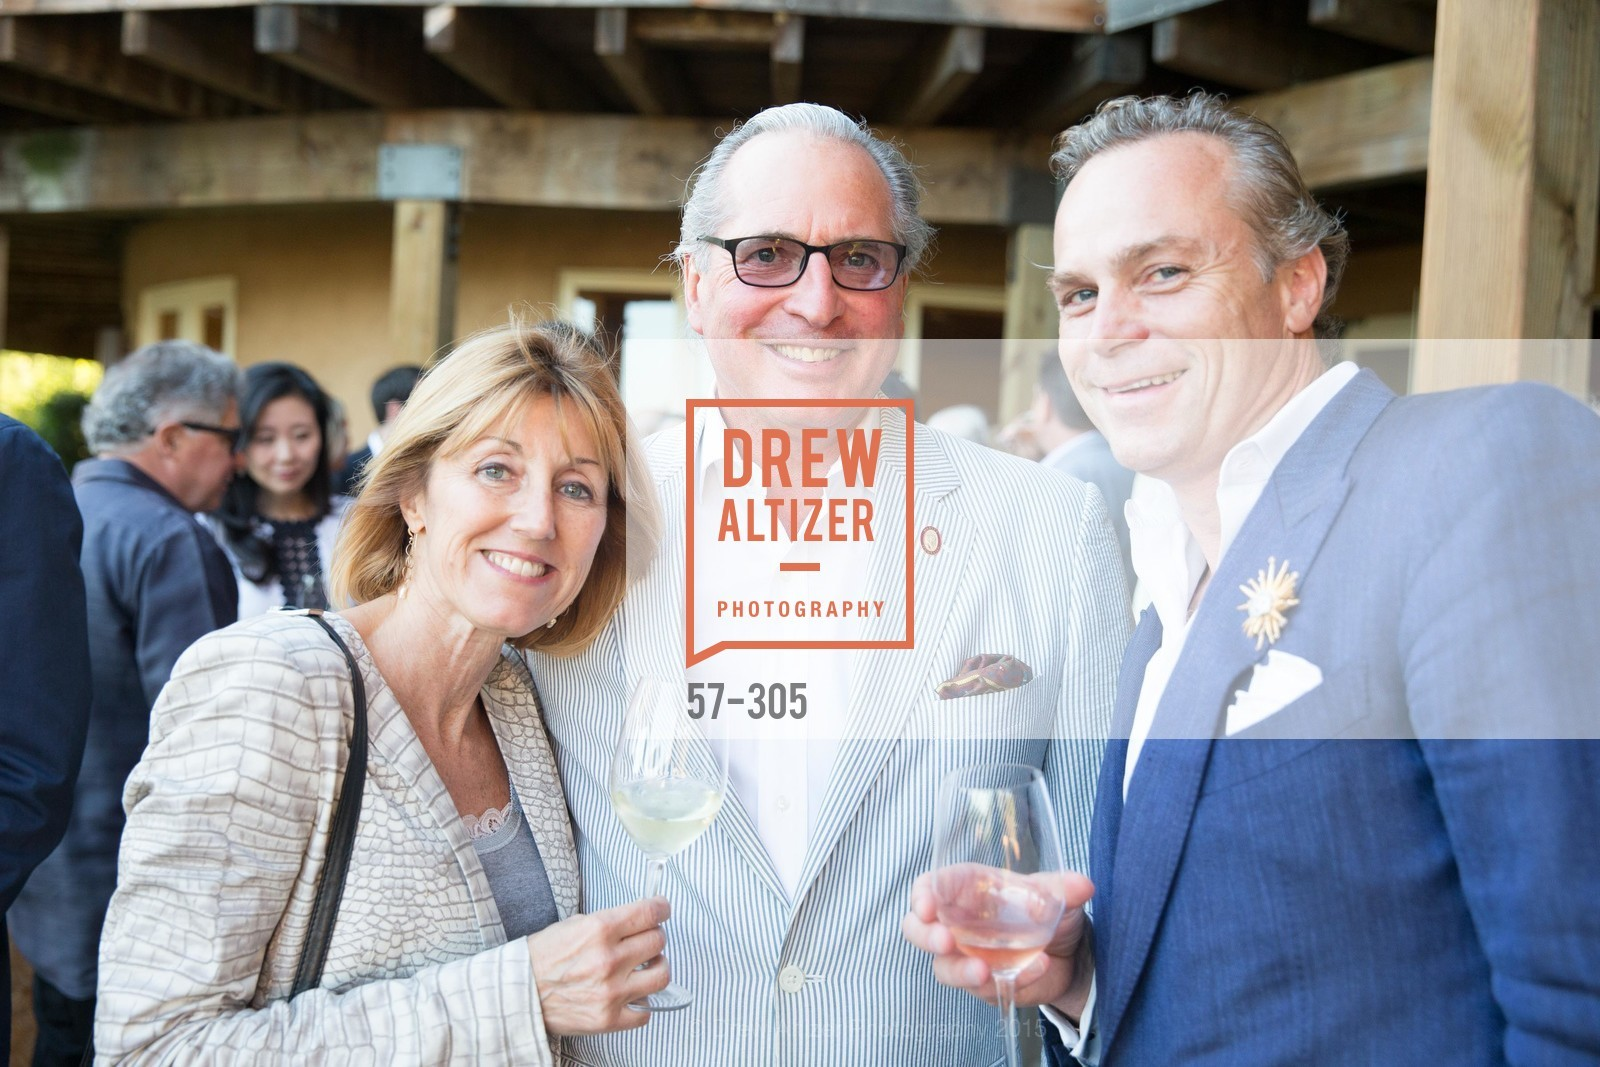 Delia Viader, Gilles De Chambure, Jean-Charles Boisset, LE PAN Napa Valley Launch Cocktail Party, Auberge dr Soliel, September 22nd, 2015,Drew Altizer, Drew Altizer Photography, full-service agency, private events, San Francisco photographer, photographer california